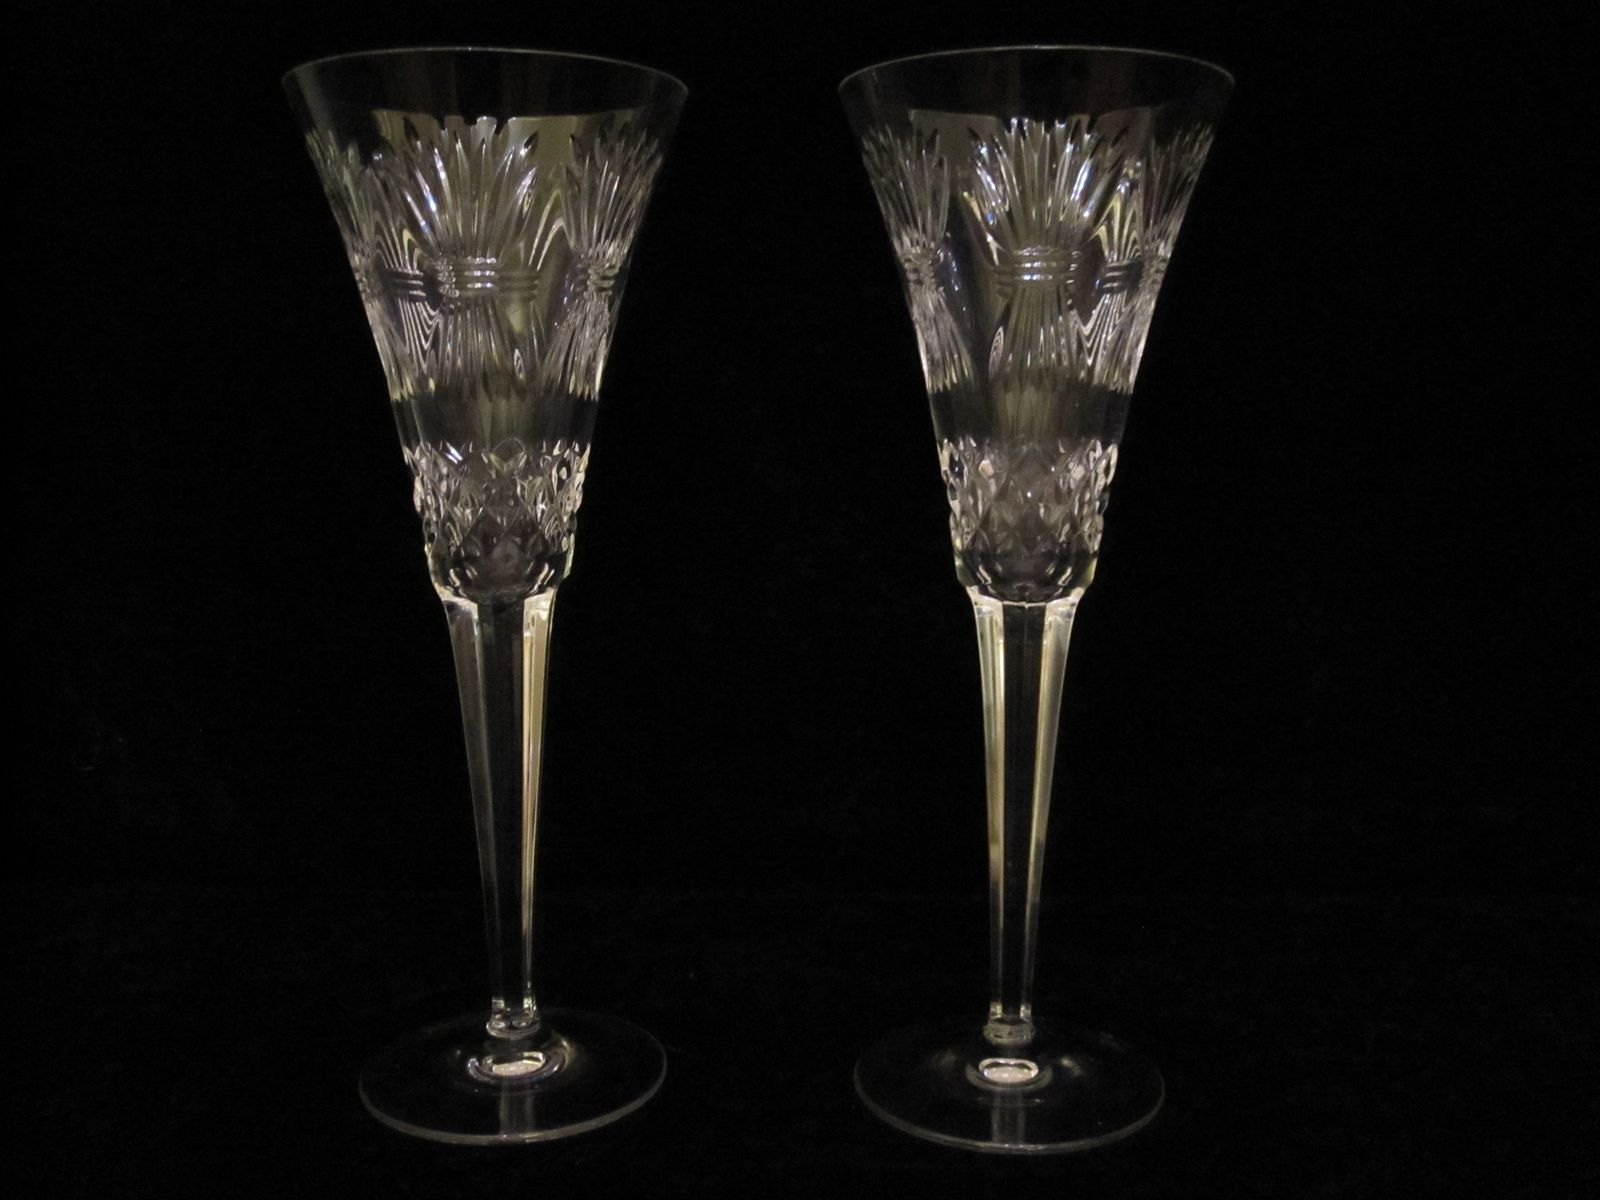 Awesome waterford crystal patterns for dining furniture ideas with waterford crystal glass patterns